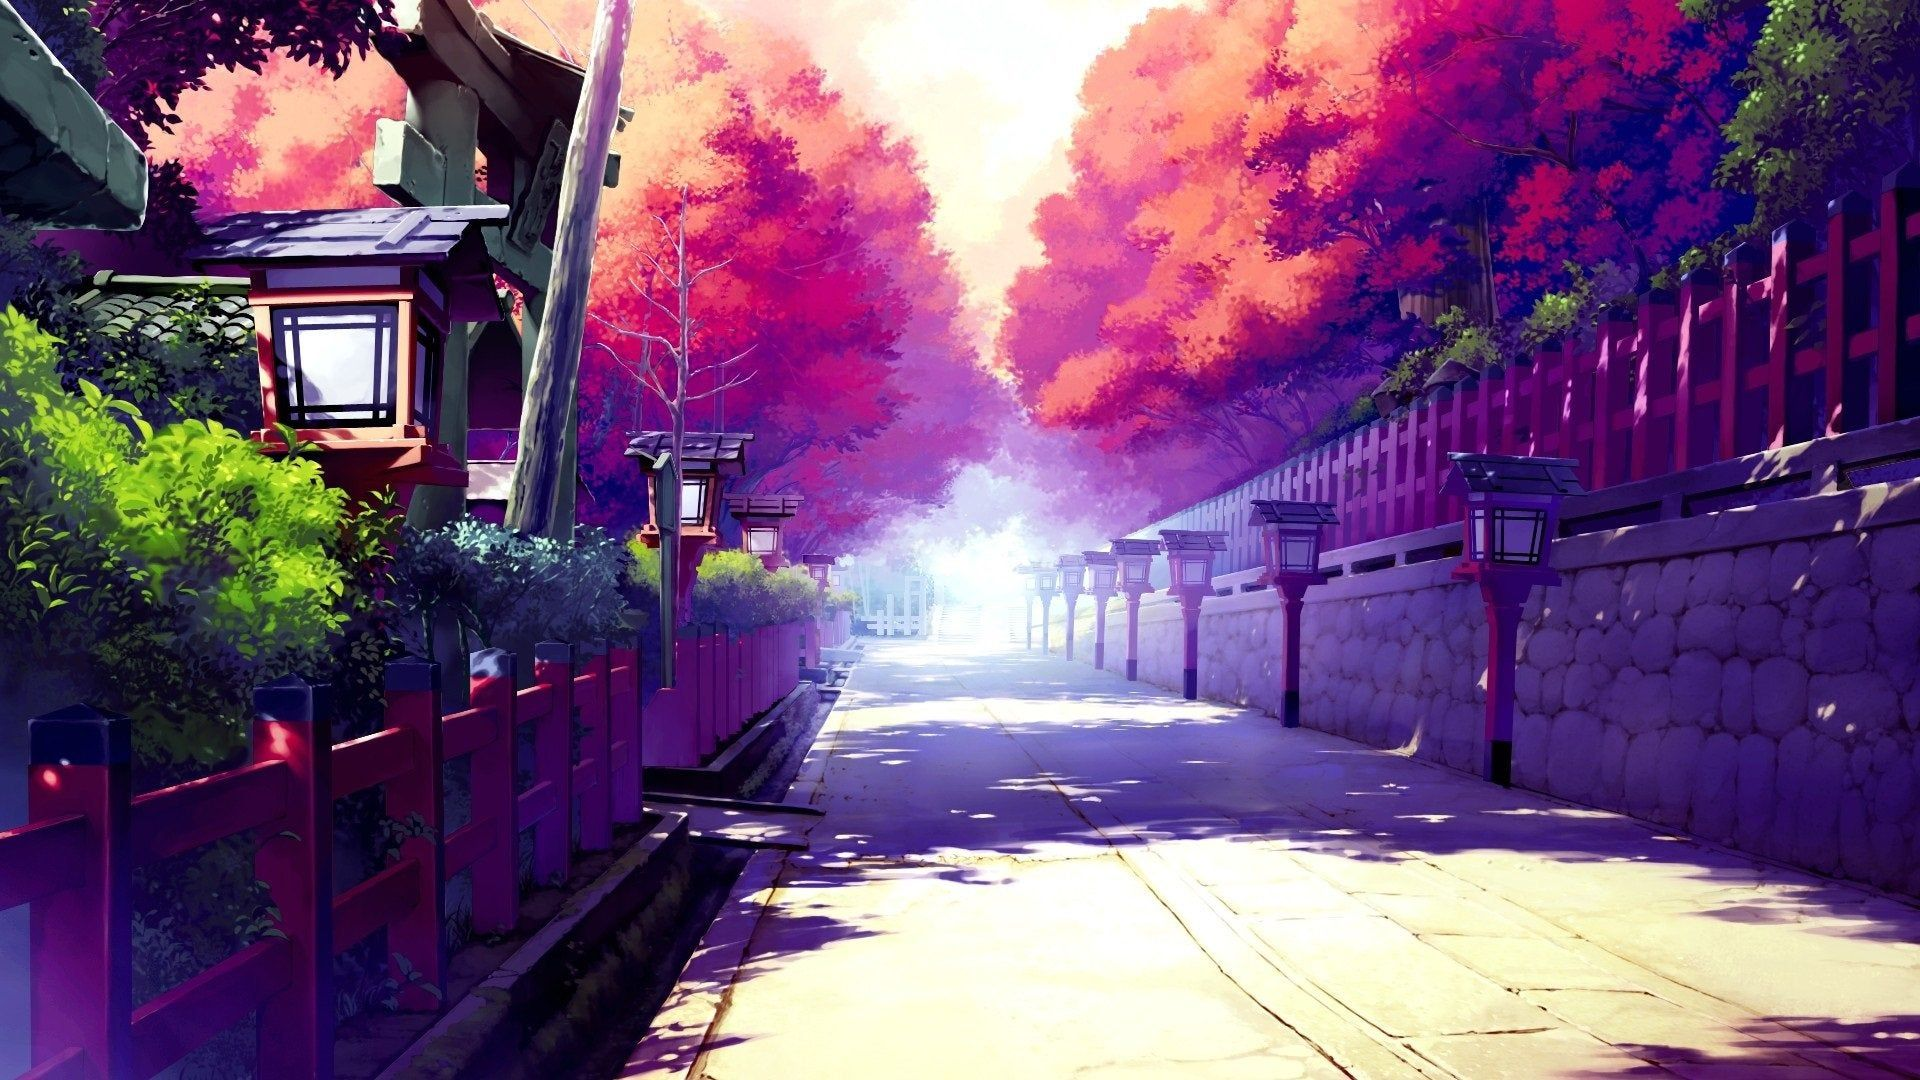 Anime Street Wallpapers - Wallpaper Cave